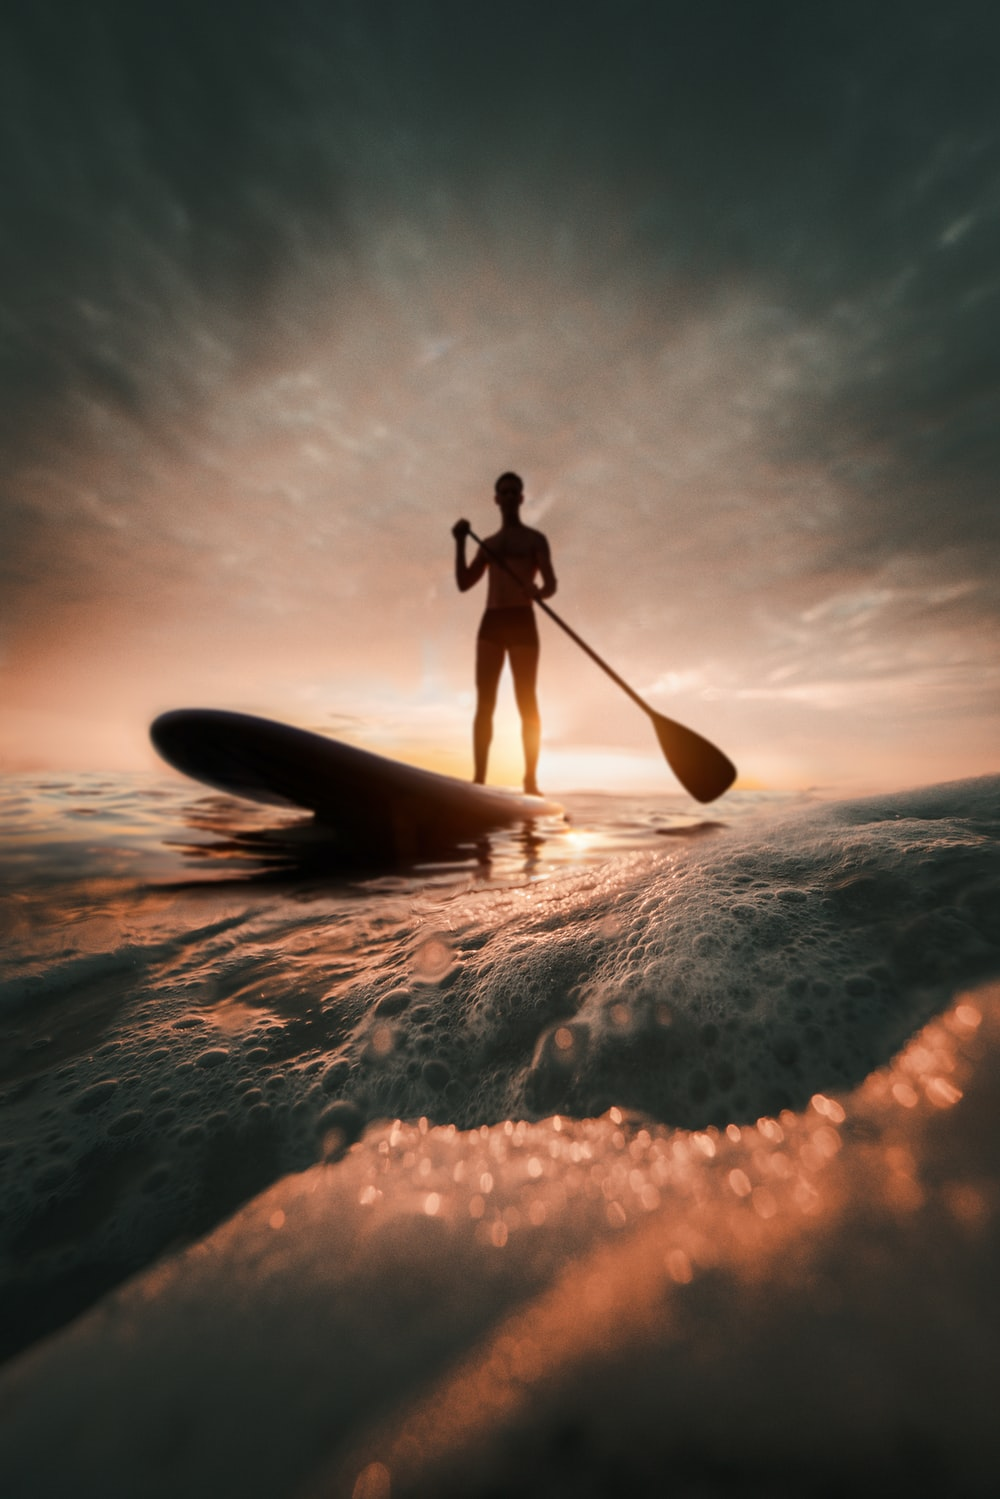 person paddle boarding during golden hour